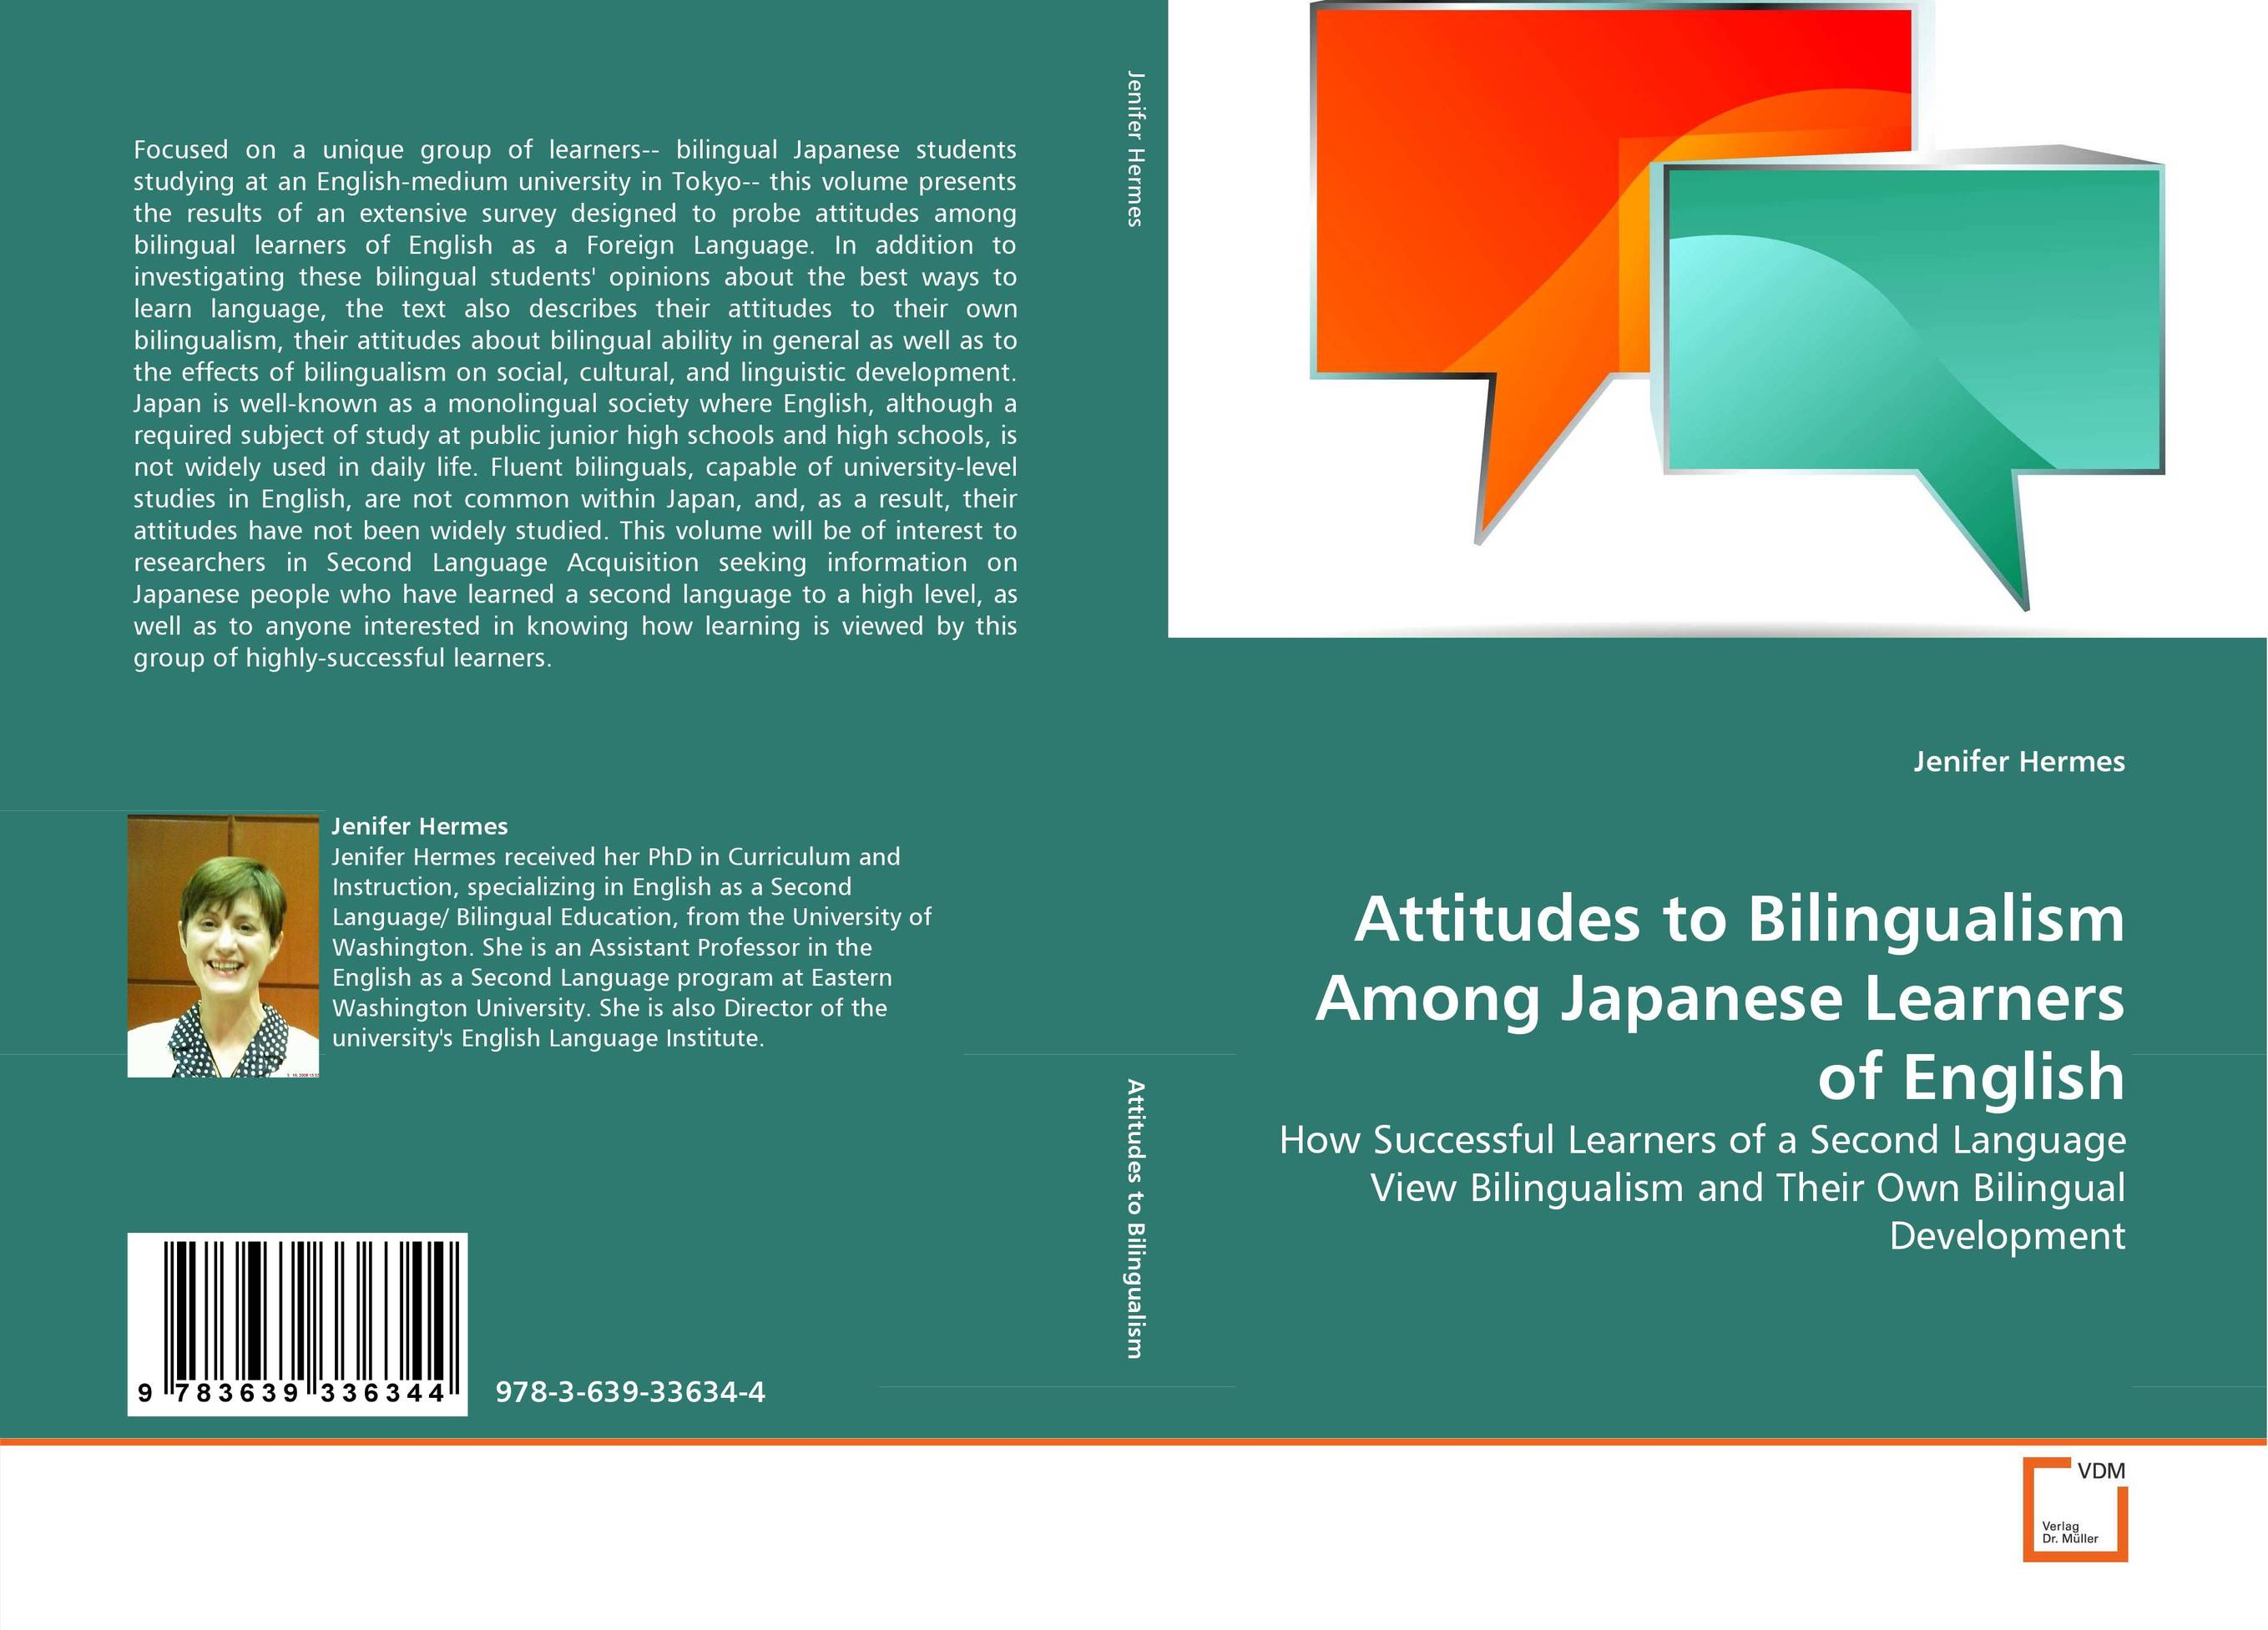 Attitudes to Bilingualism Among Japanese Learners of English james wasajja the english language communicative needs among international students